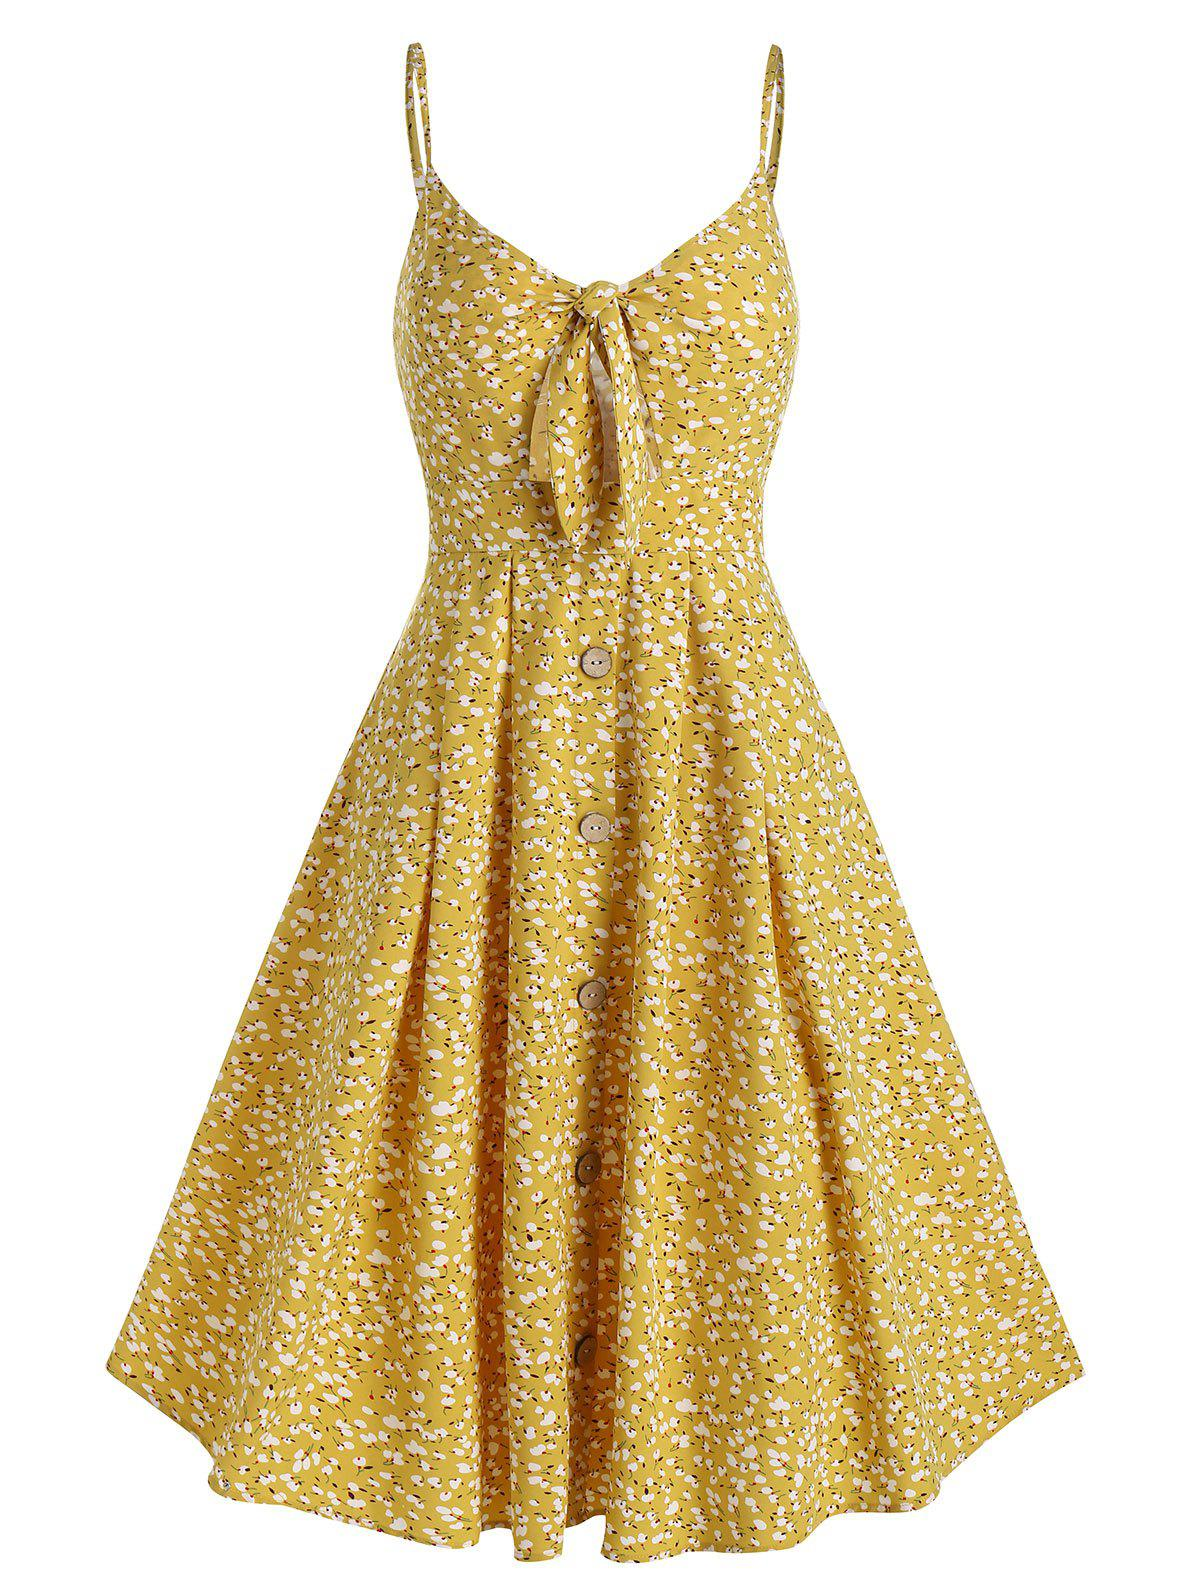 Tiny Floral Print Spaghetti Strap Knotted Dress - BRIGHT YELLOW M